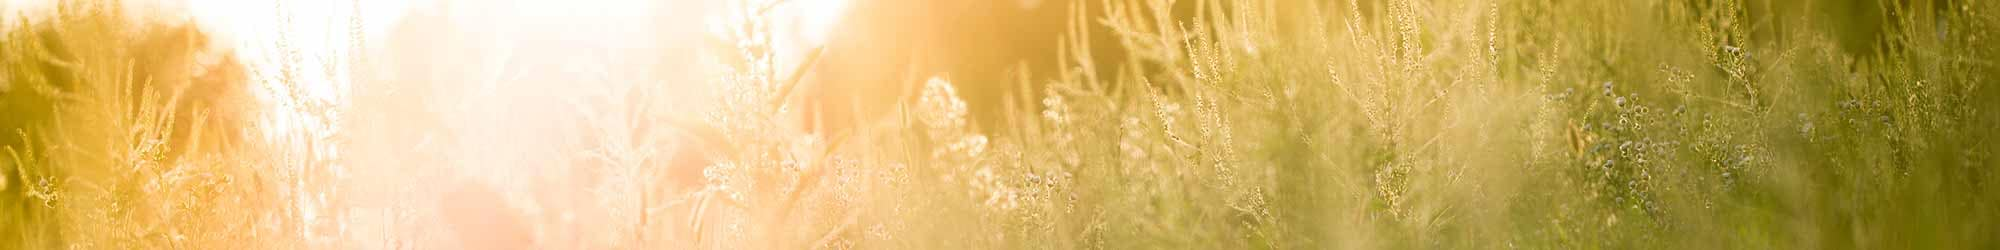 Learn about how Waltonwood enriches residents' lives